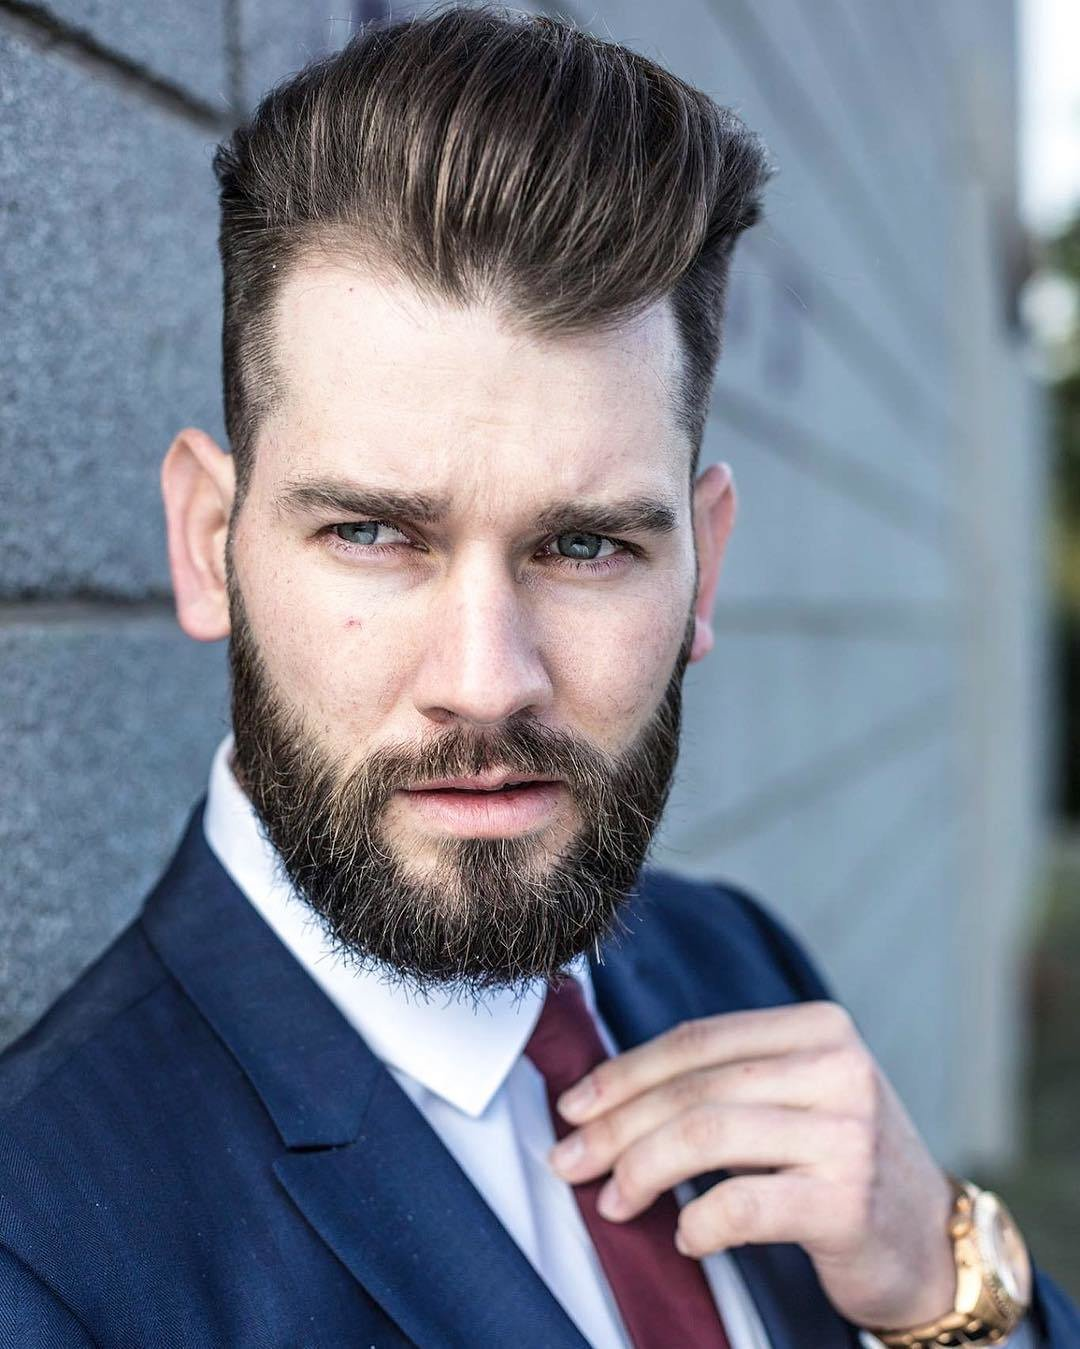 The Best Top 30 Business Hairstyles For Men Pictures